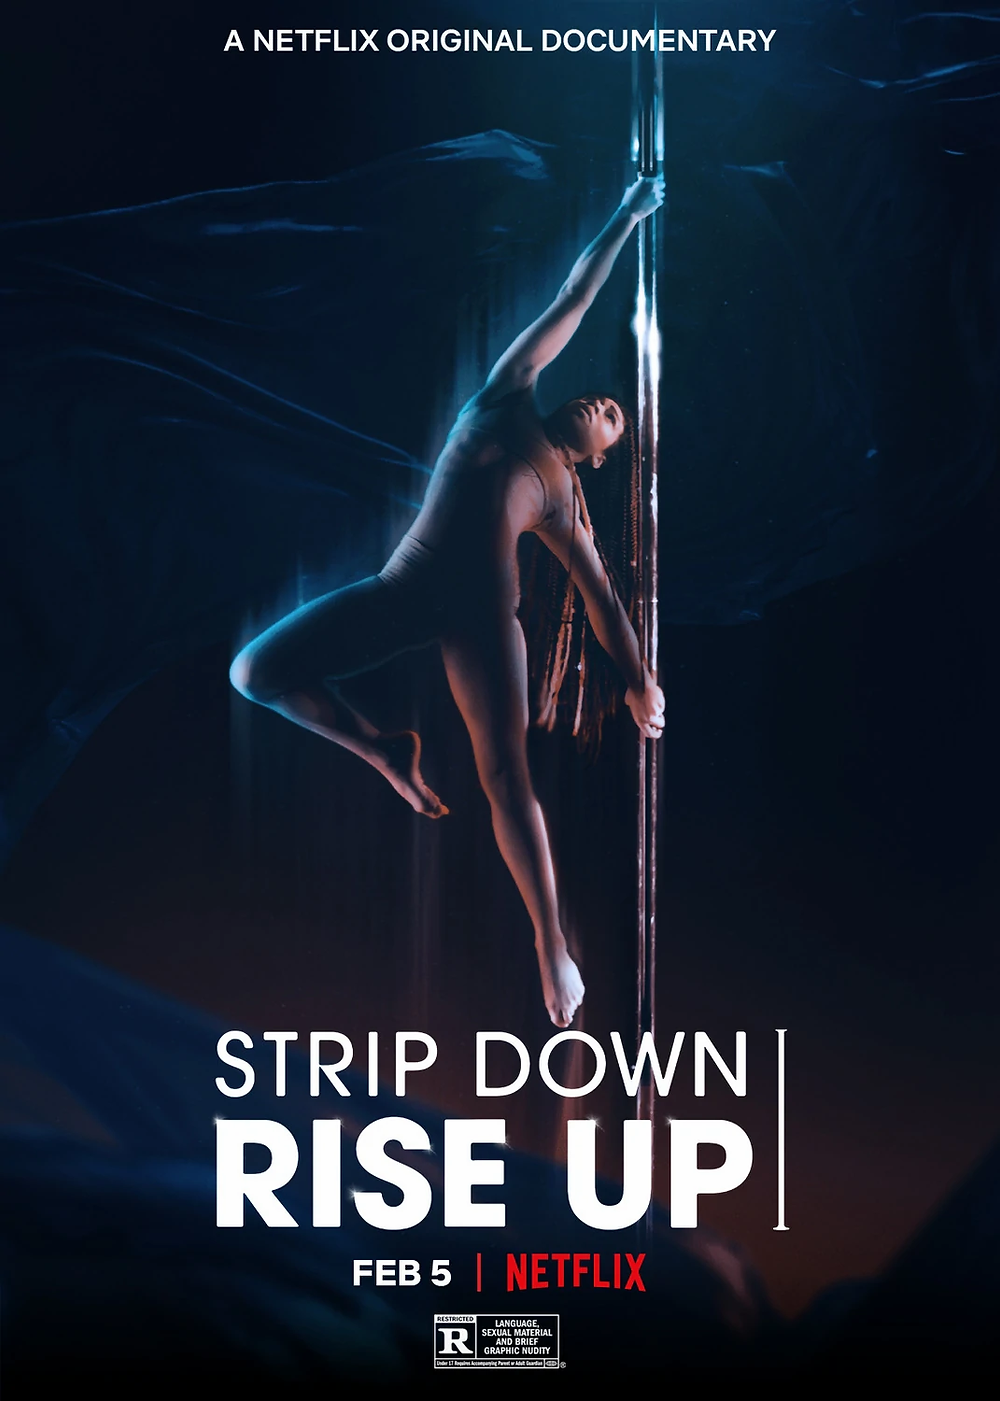 A pole dancer is the centre of the image as she glows in a golden costume, pushing herself out from the left hand side of the silver pole. The background is entirely a dark blue with a neon haze that highlights the dancer in the middle.